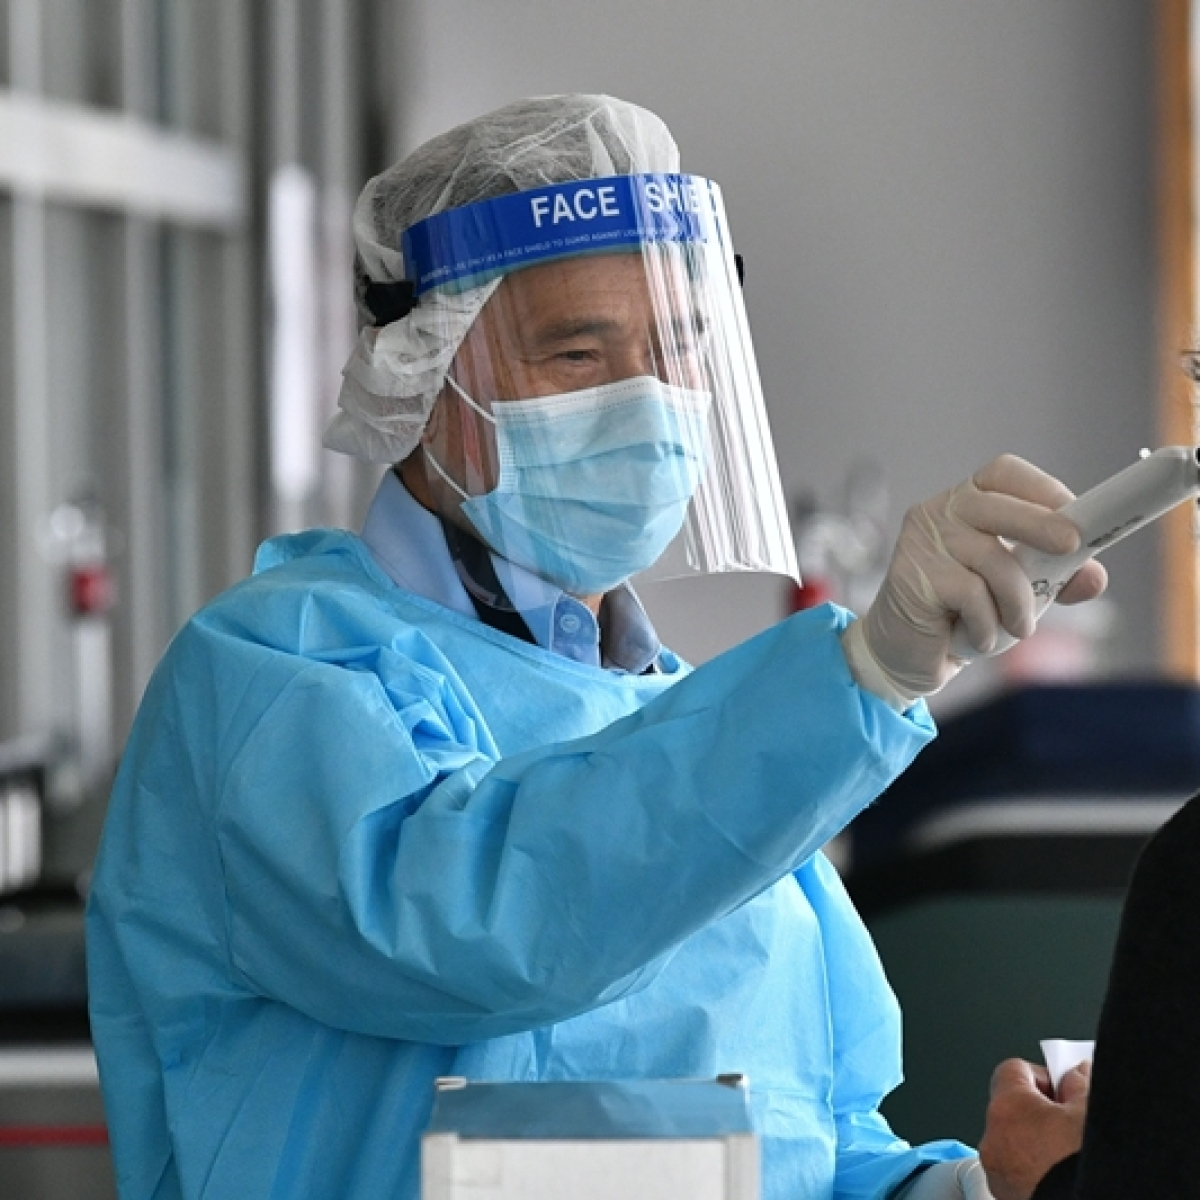 Coronavirus Update: Hong Kong becomes third country to report death after China and Philippines